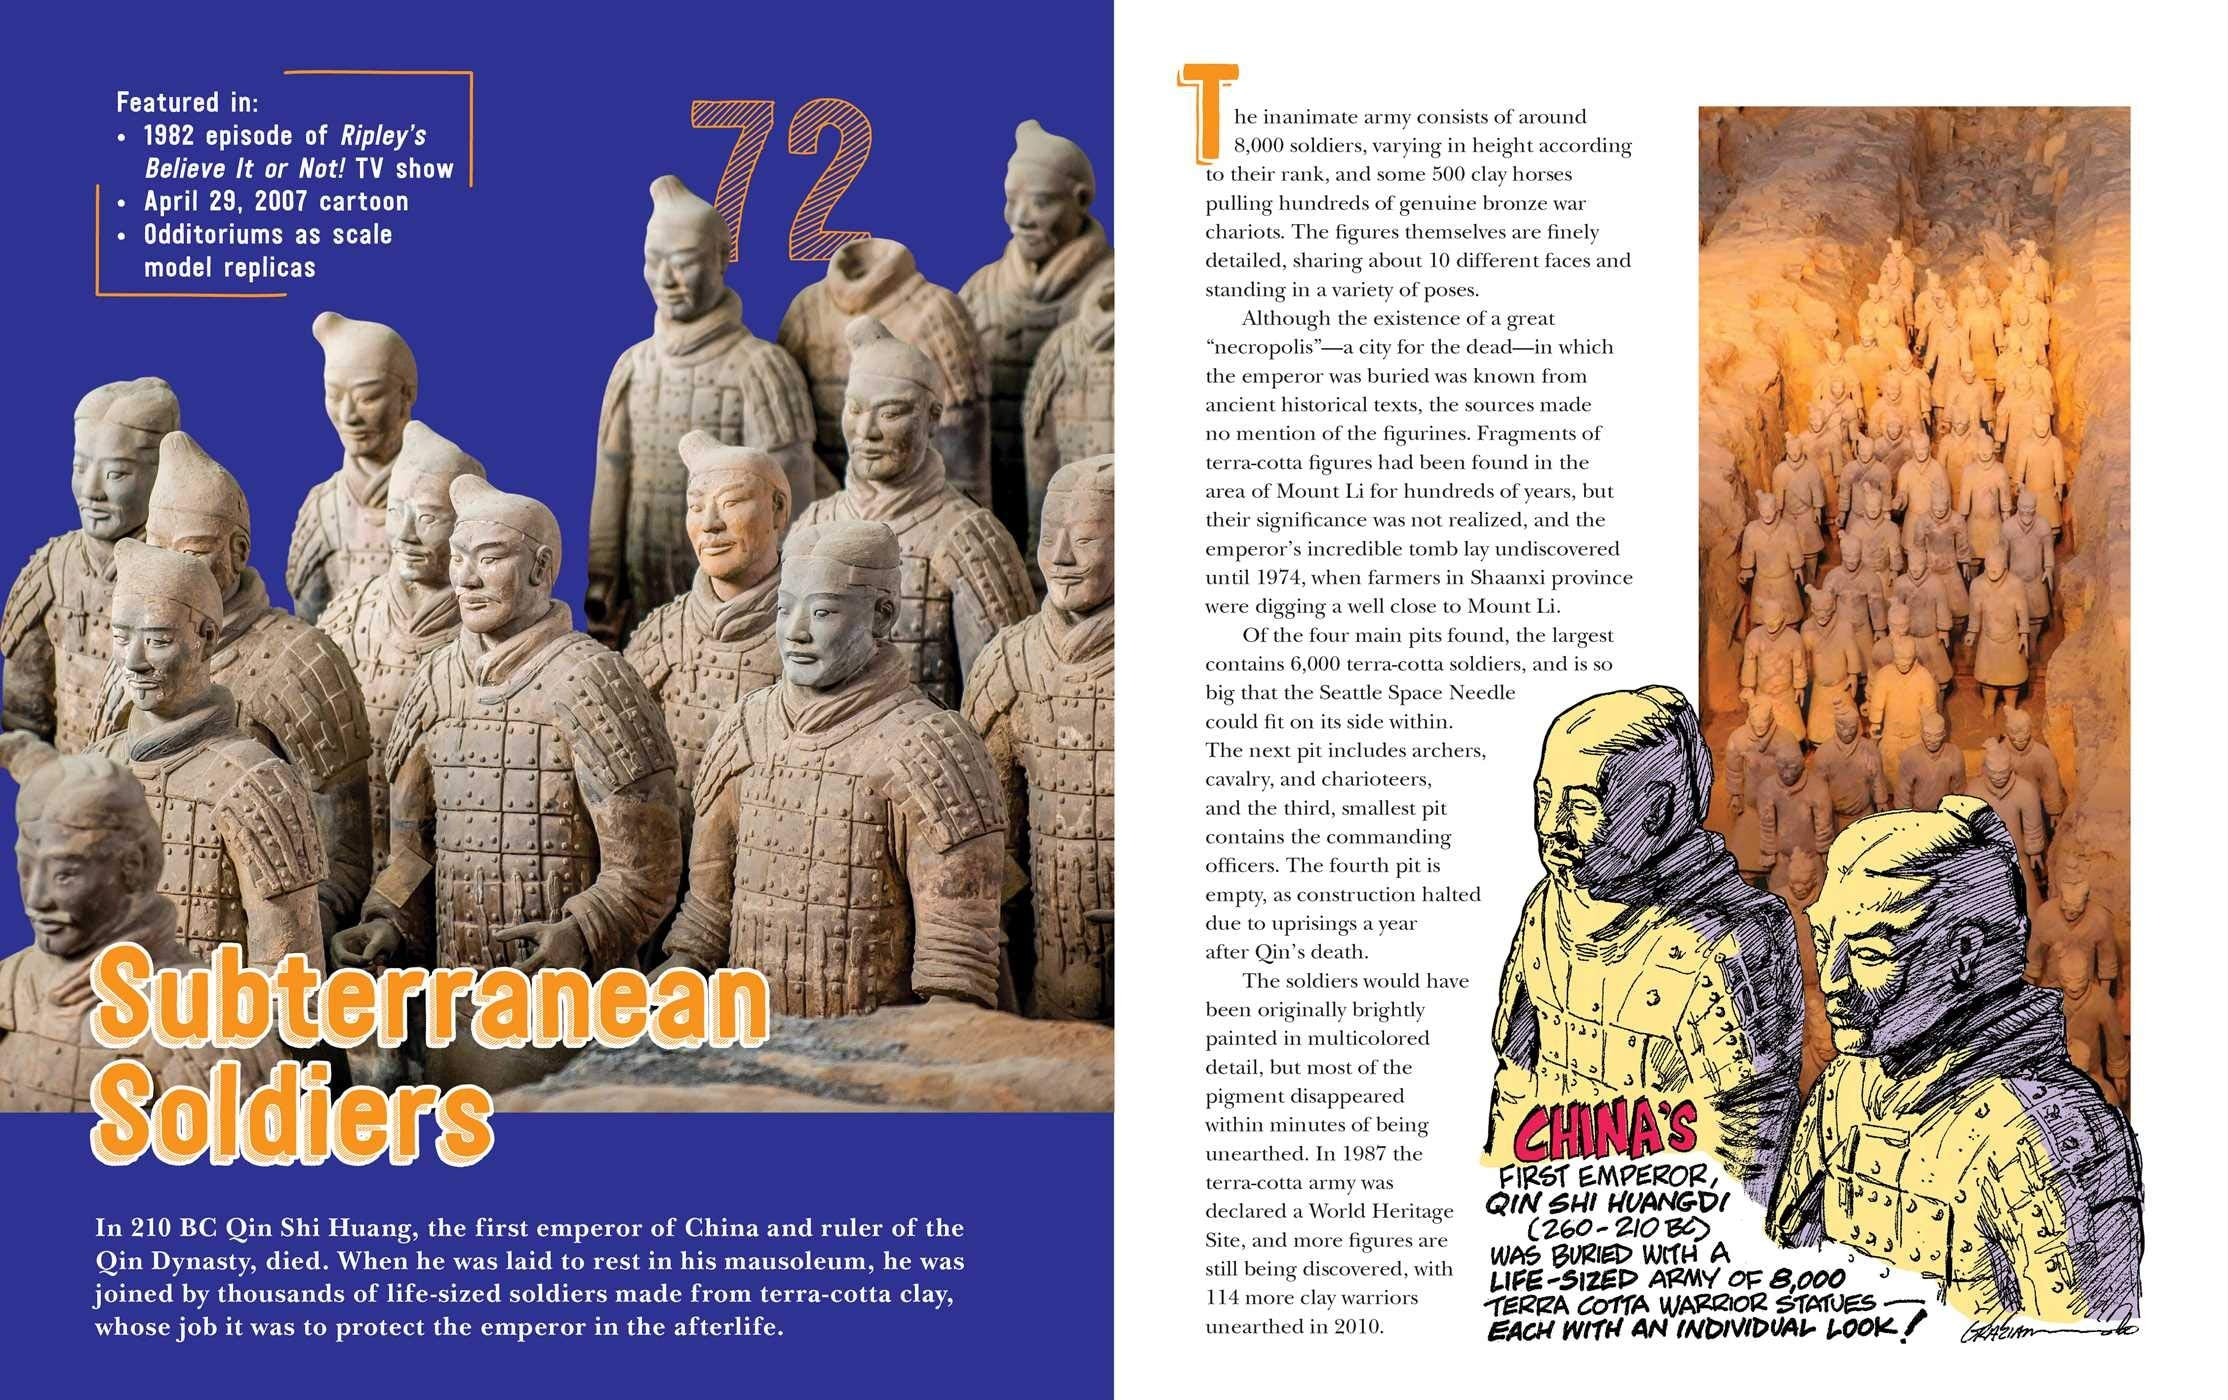 Sample two page colour spread from the book including text and images about China's life sized subterranean terra cotta soldiers